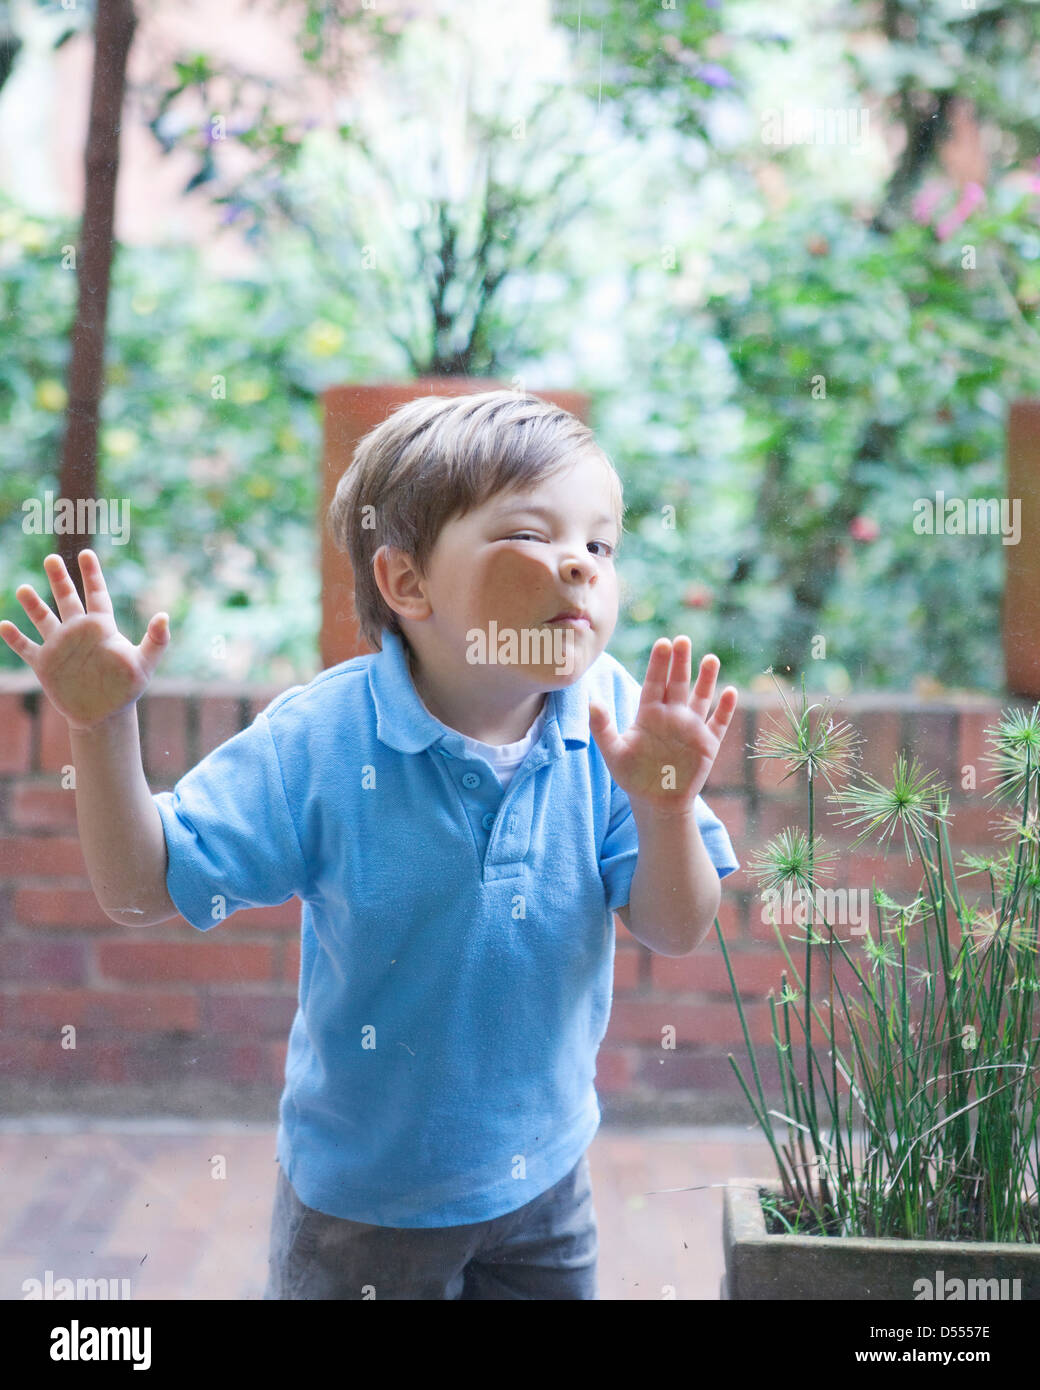 Boy pressing face against glass - Stock Image